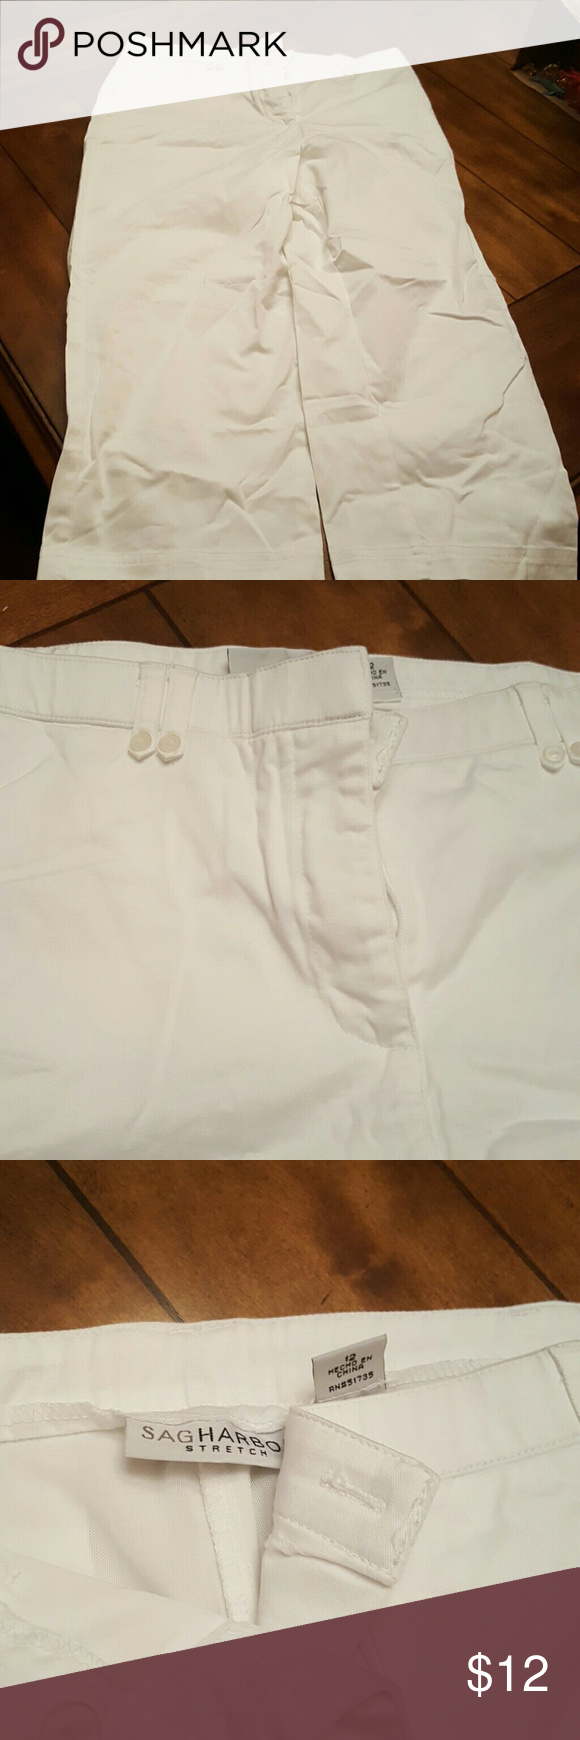 SIZE 12 SAG HARBOR STRETCH CAPRIS EUC SIZE 12 SAG HARBOR STRETCH CAPRIS Sag Harbor Pants Capris